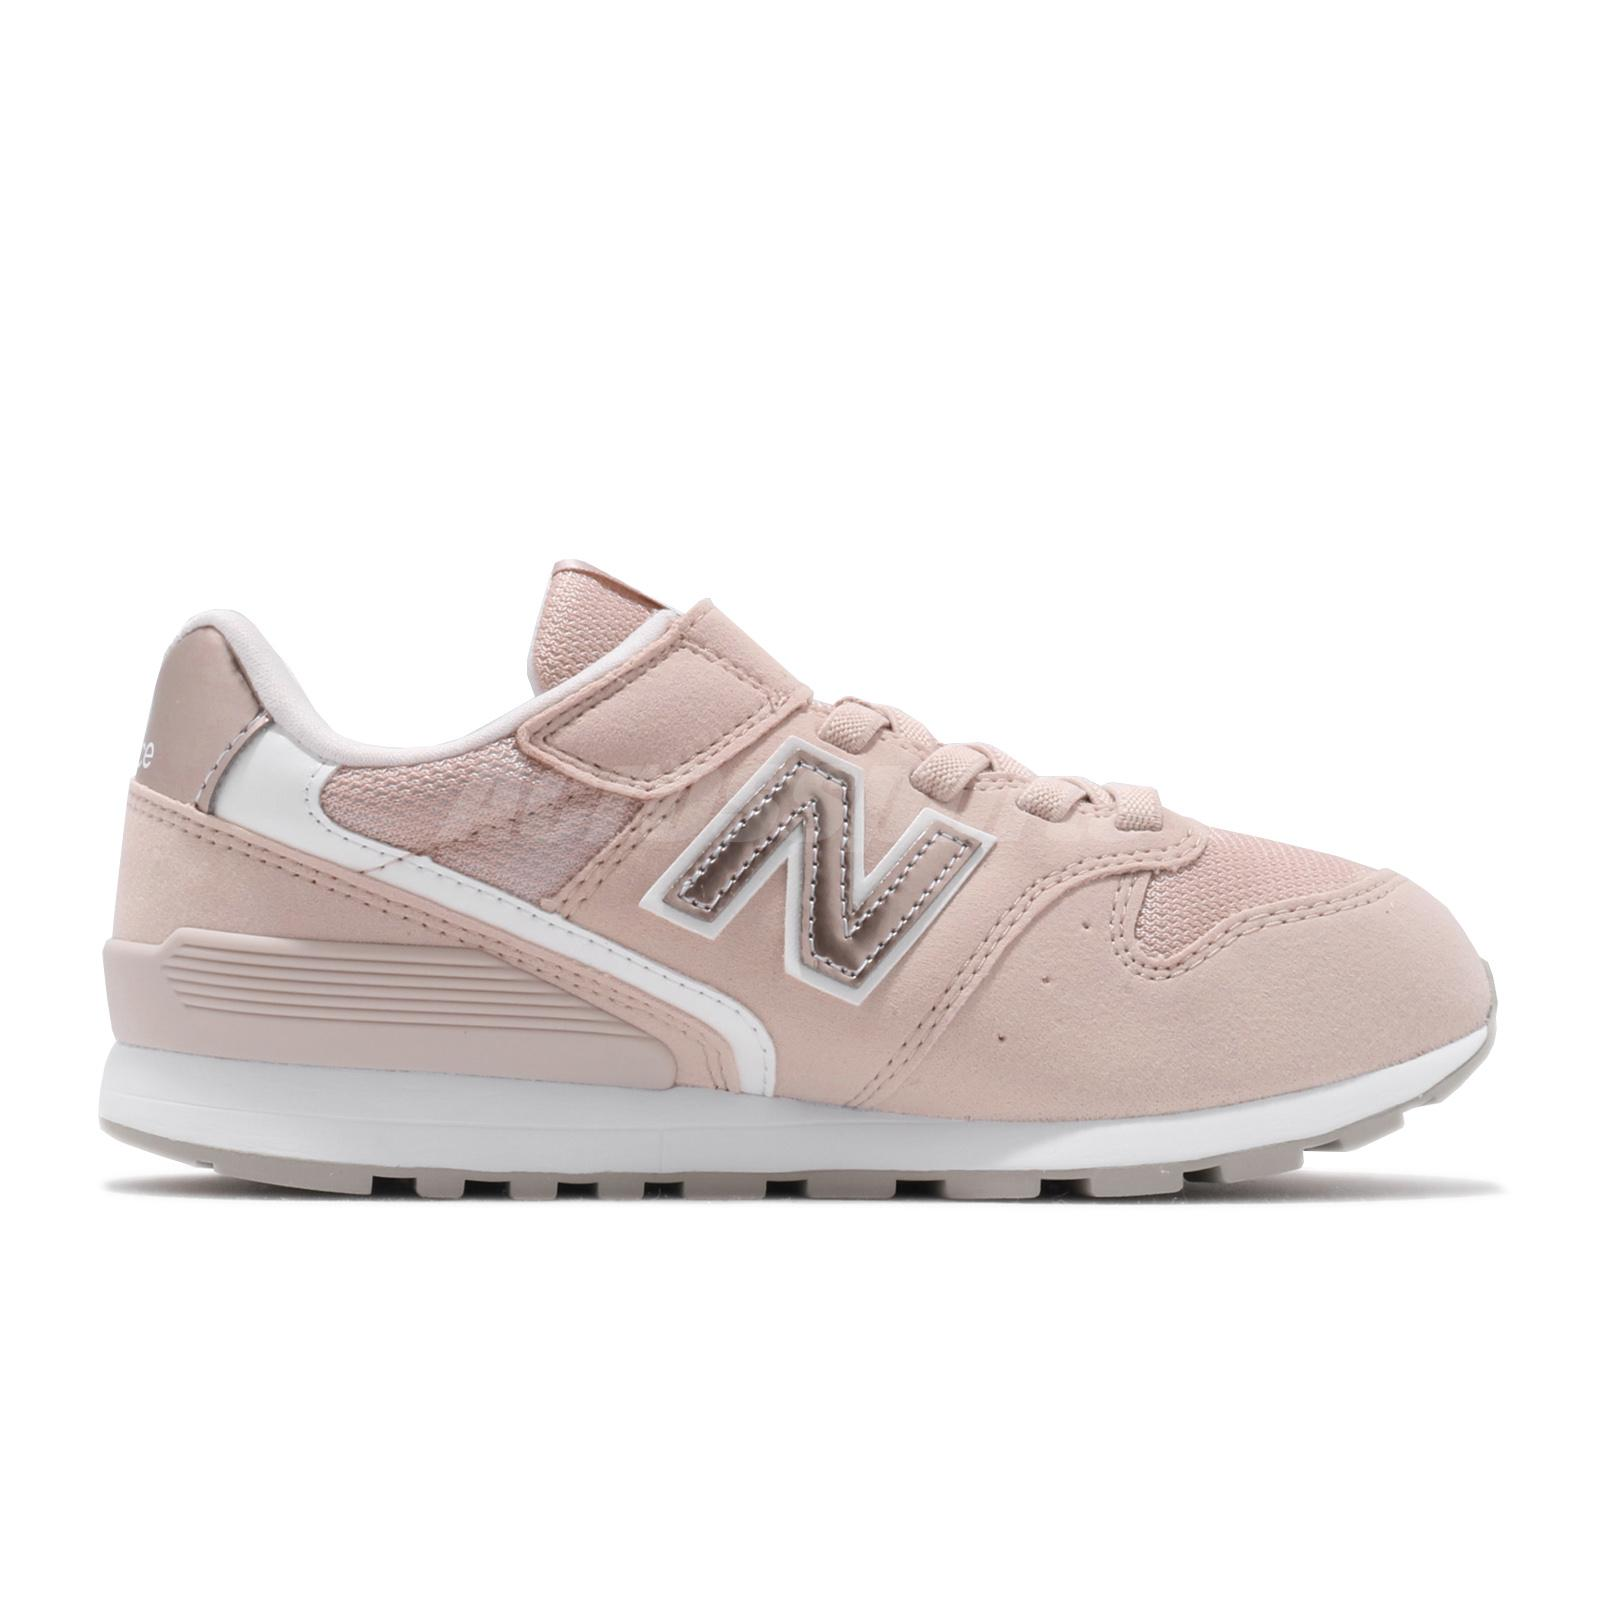 Details about New Balance YV996PPK W Wide Pink White Kid Preschool Shoes Sneakers YV996PPKW